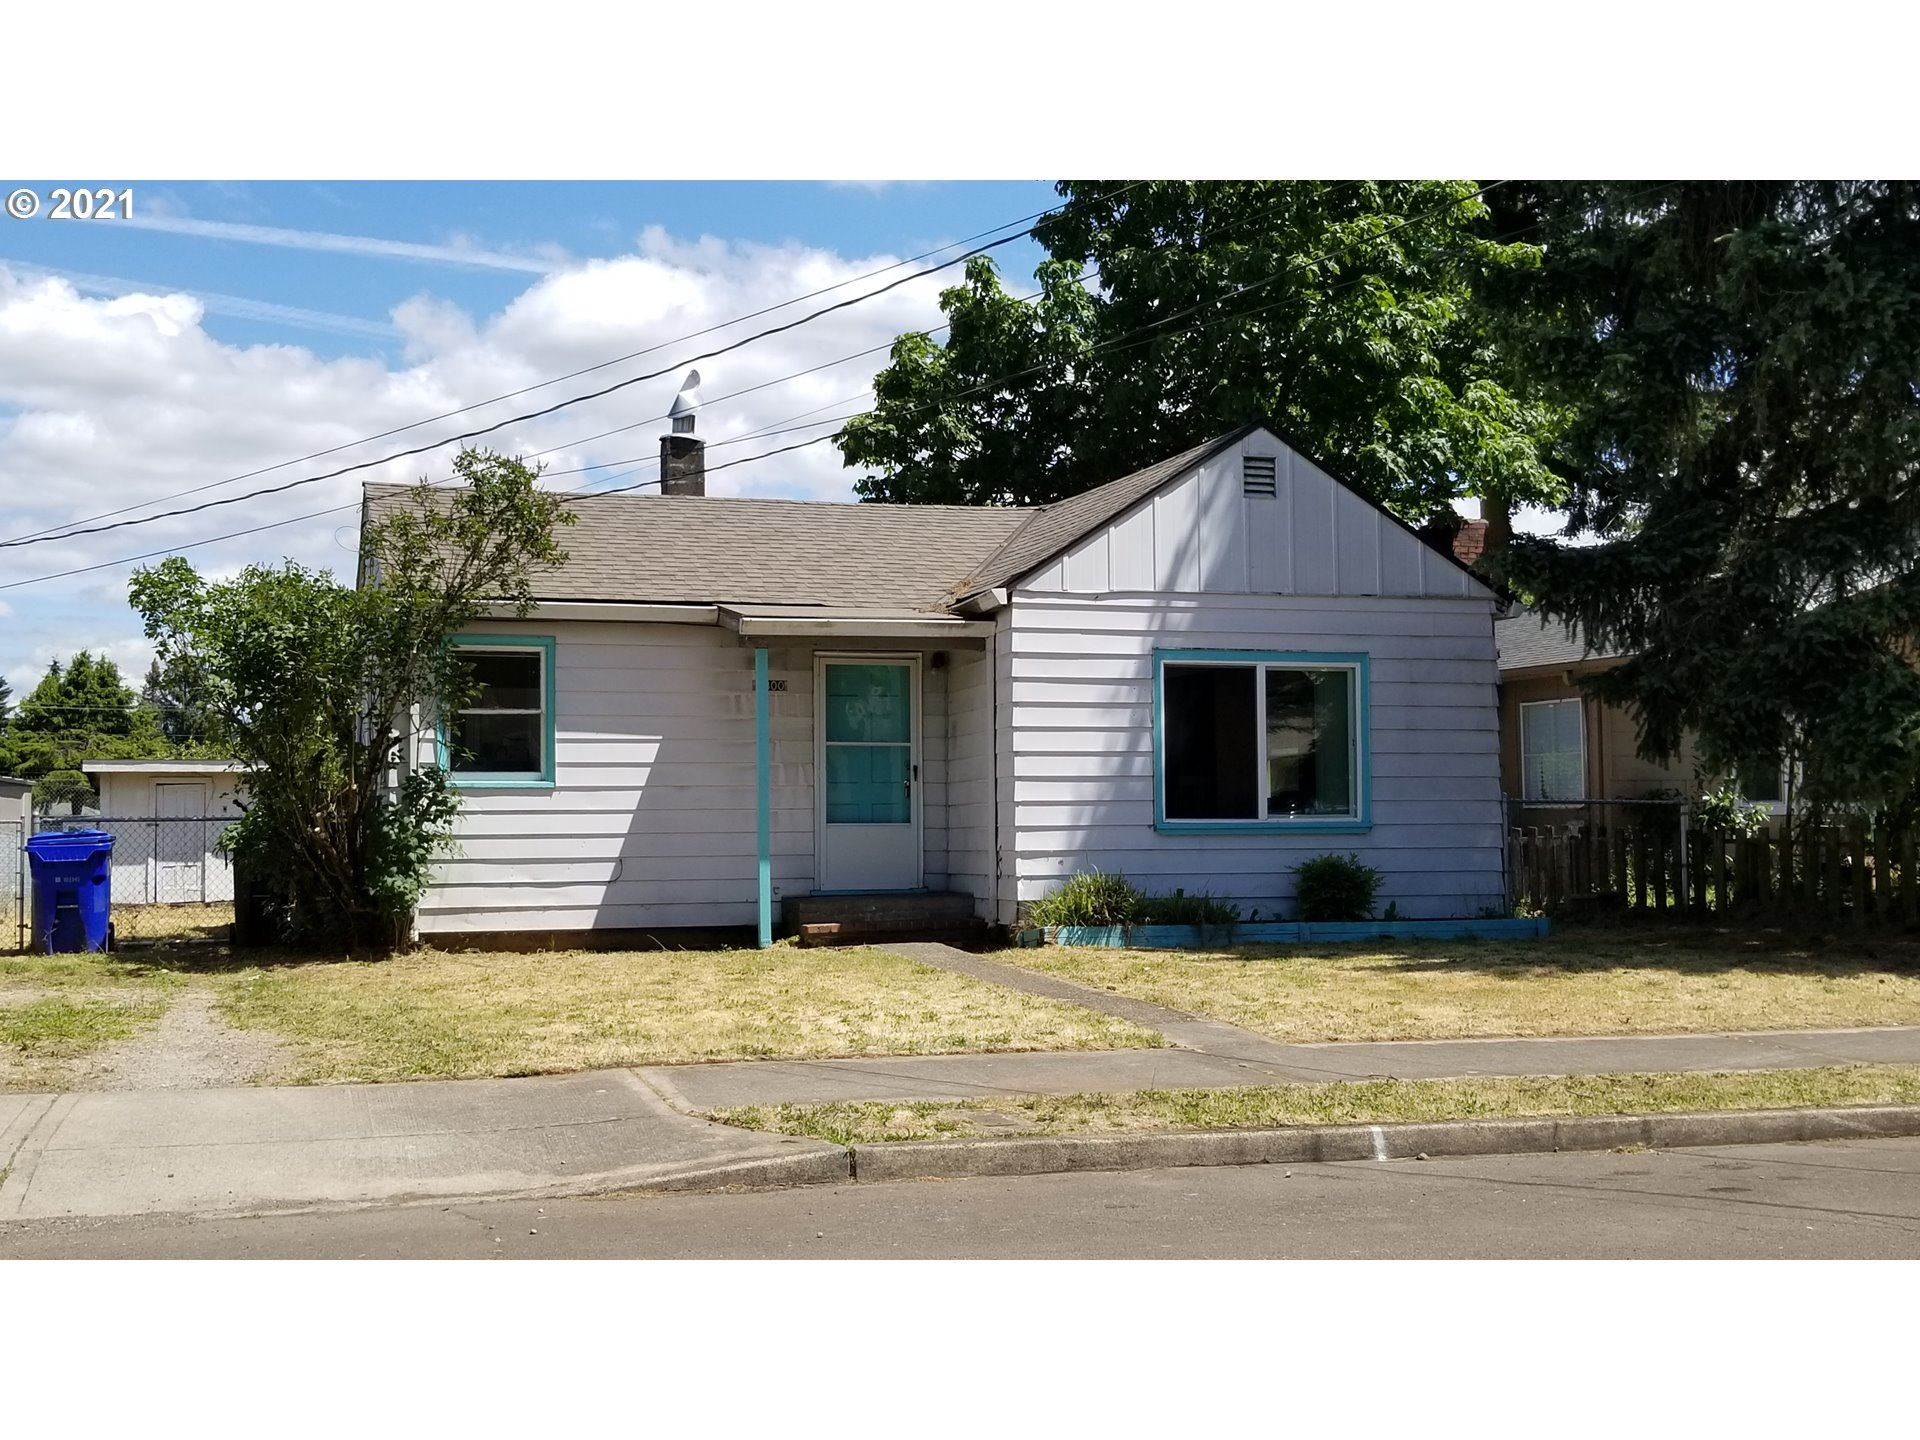 8300 SE 70TH AVE, Portland, OR 97206 - MLS#: 21280280